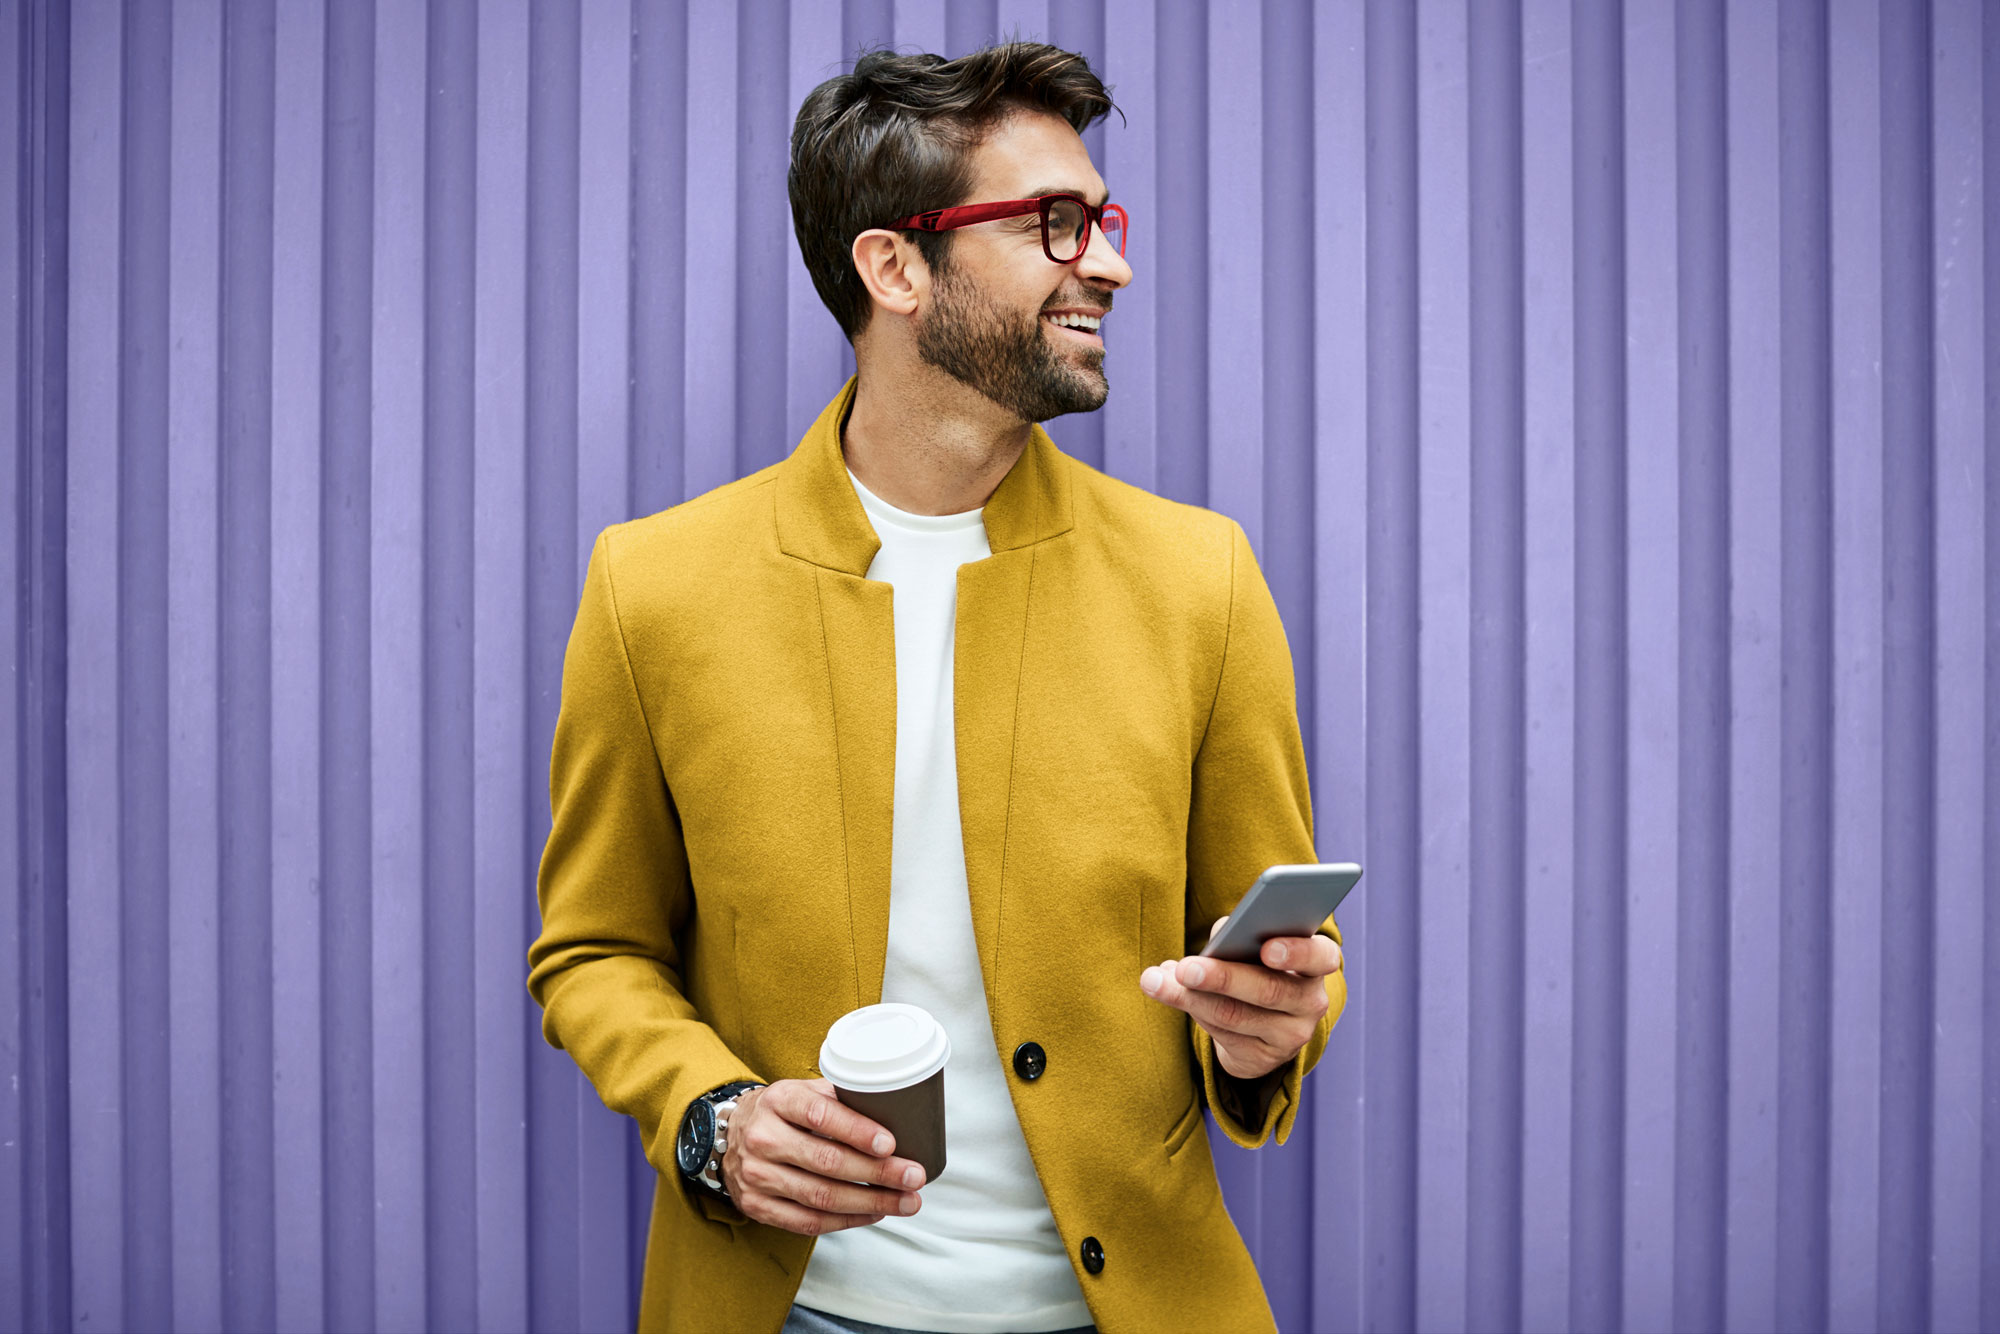 man smiling as he's using his phone and having a coffee